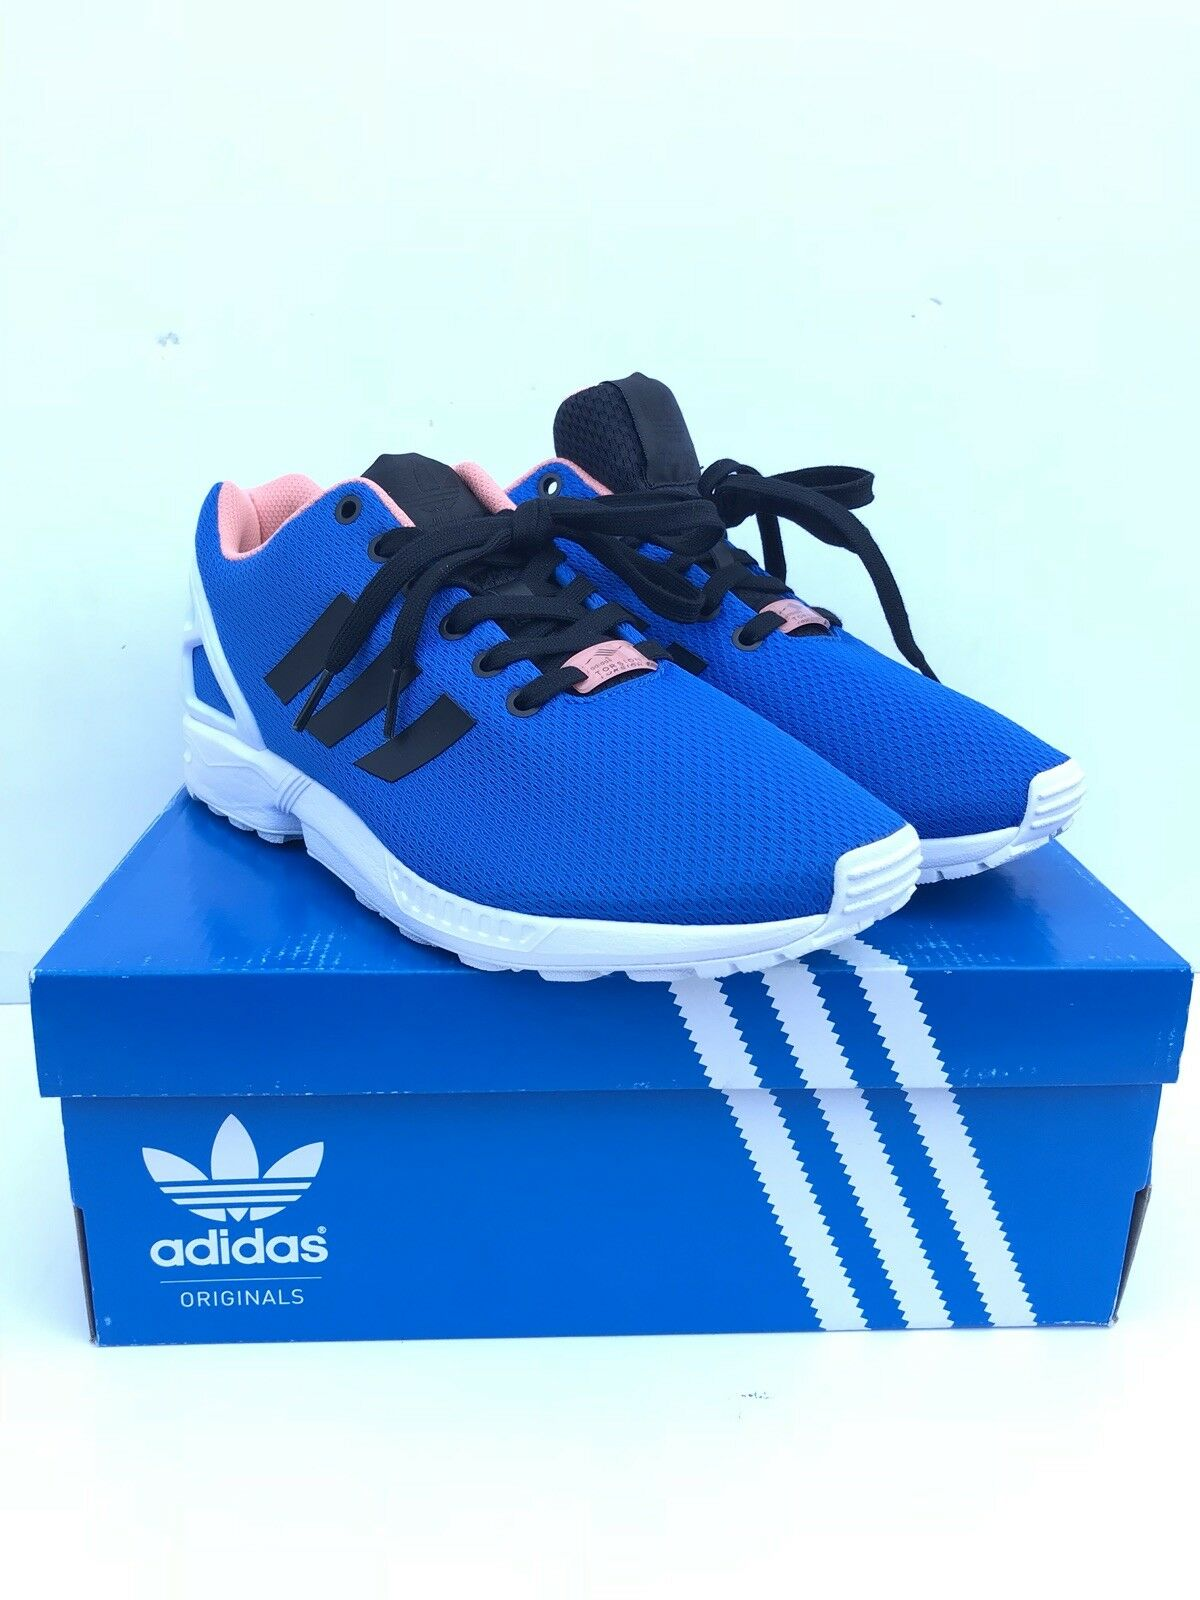 adidas ZX Flux Blue White Mens Trainers B34501 9.5